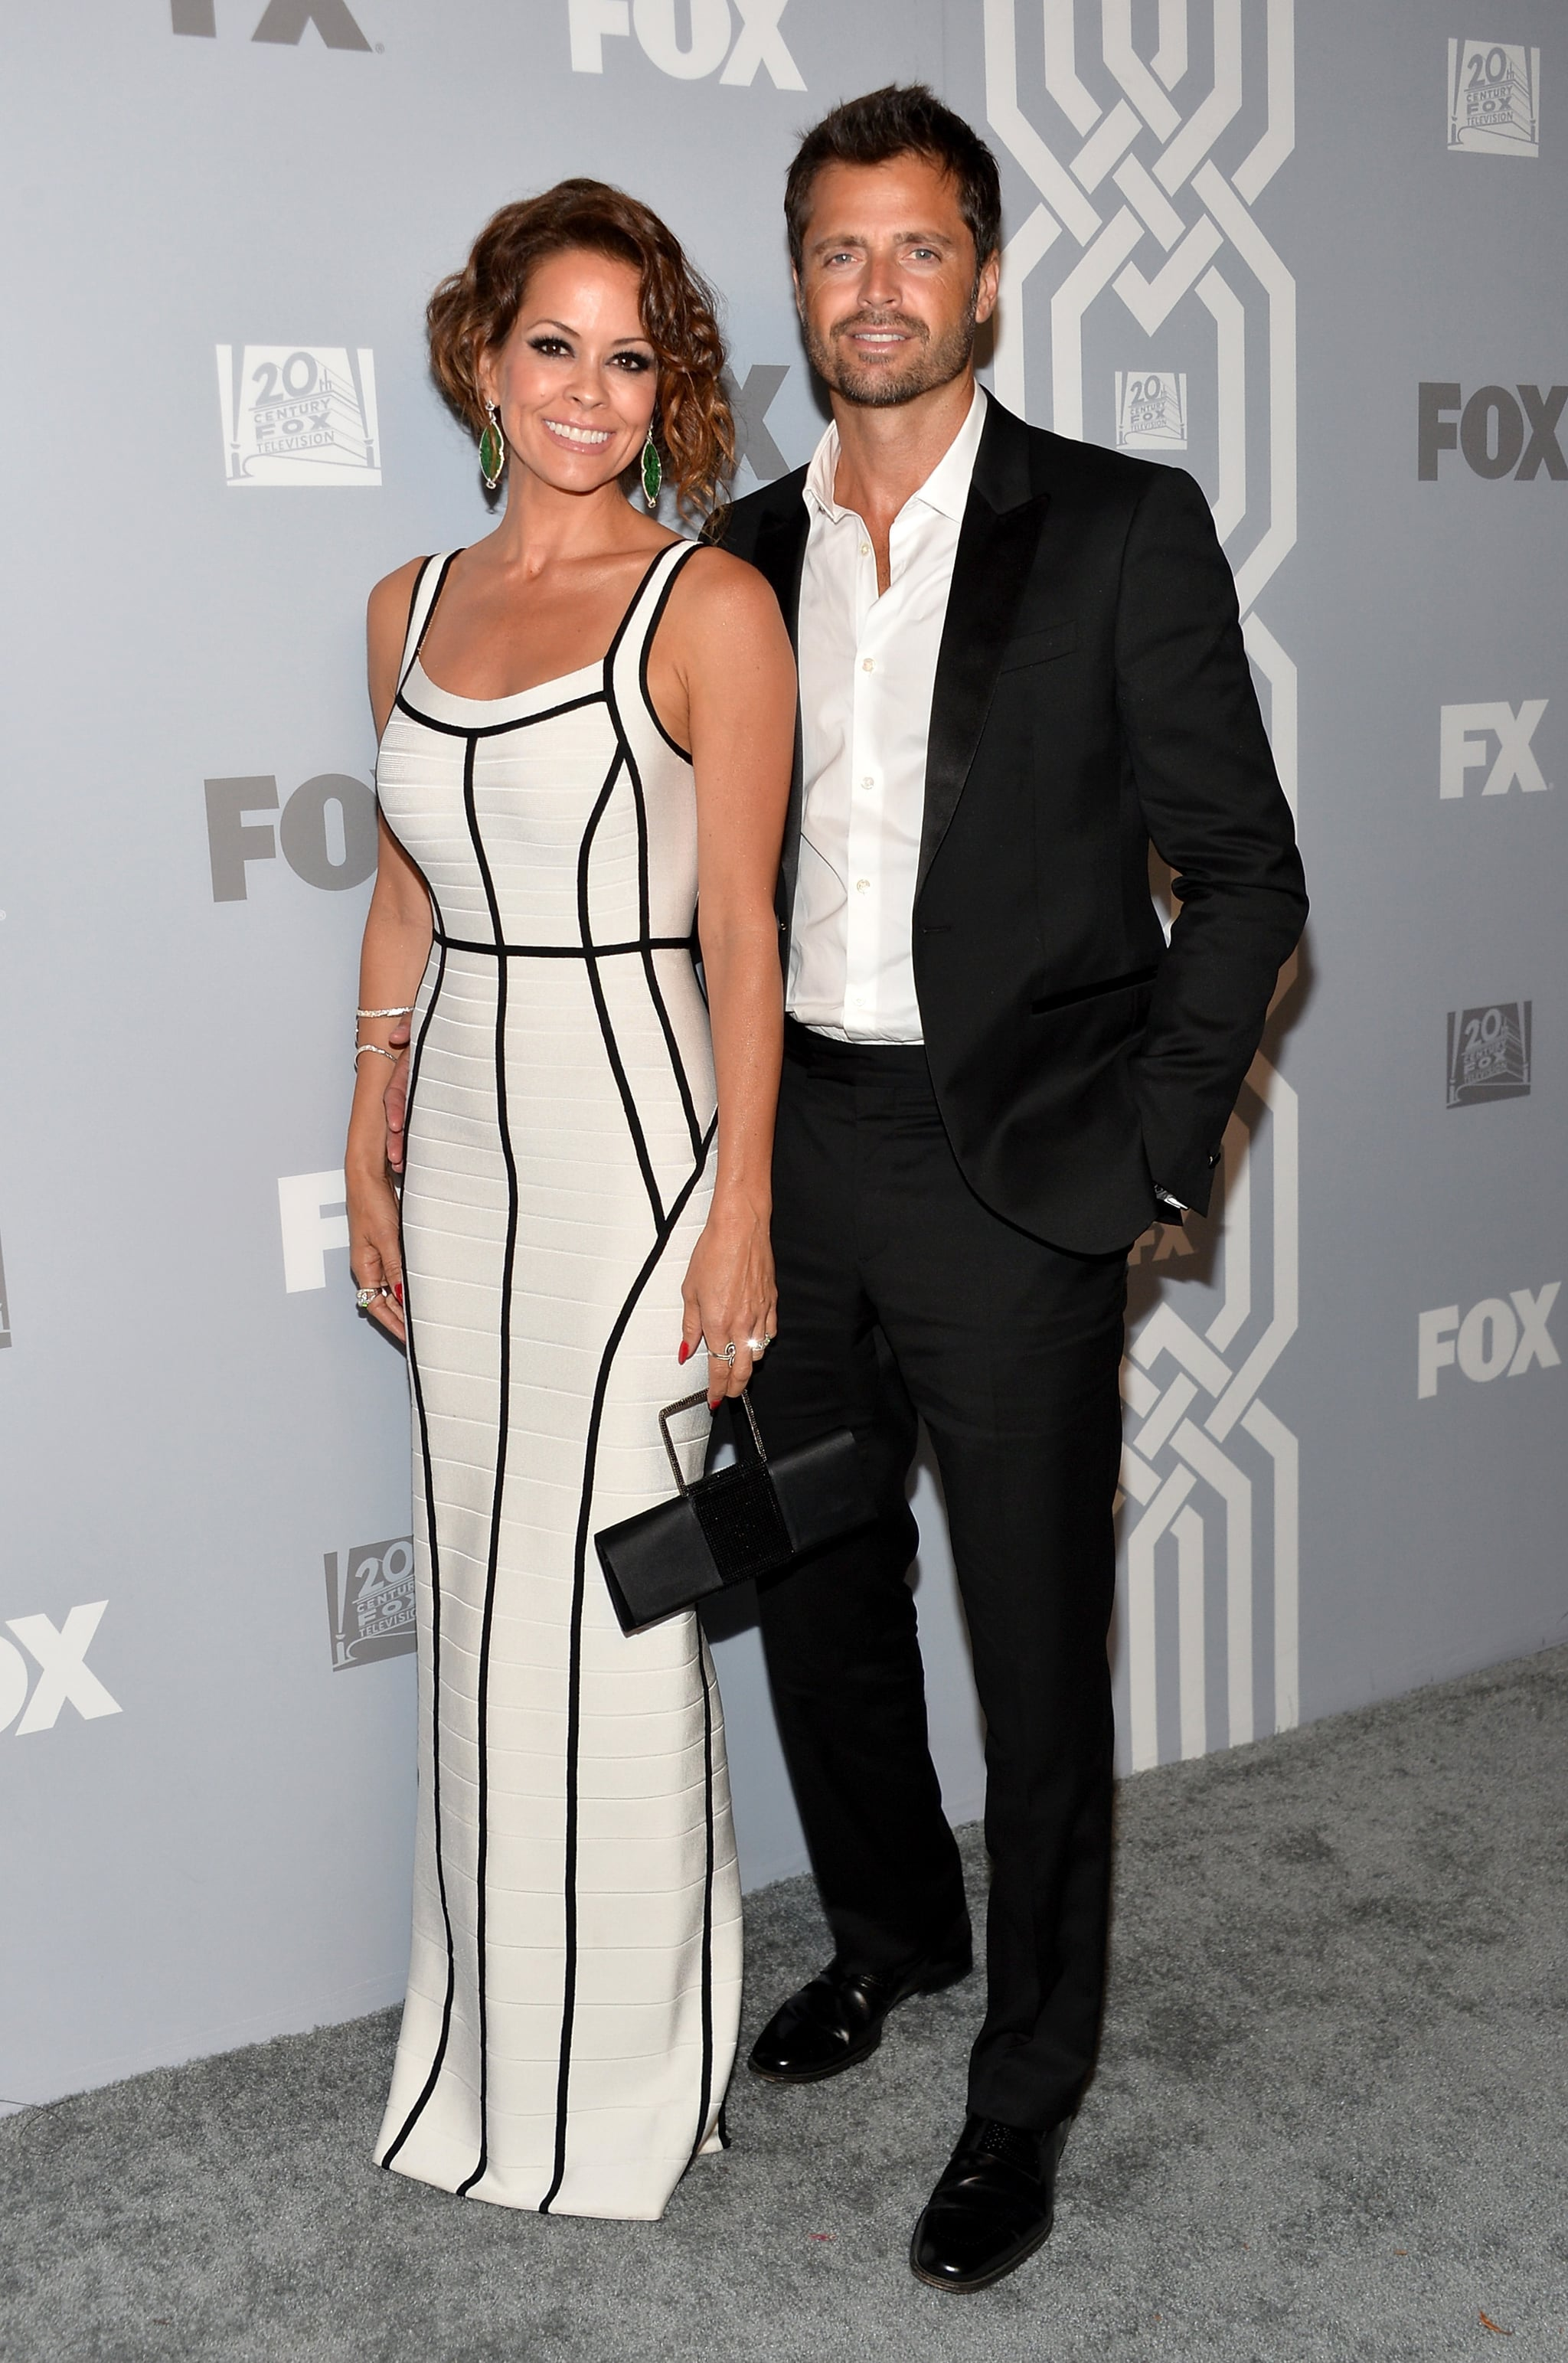 Brooke Burke-Charvet and her husband, David Charvet, paired up at the Fox party.